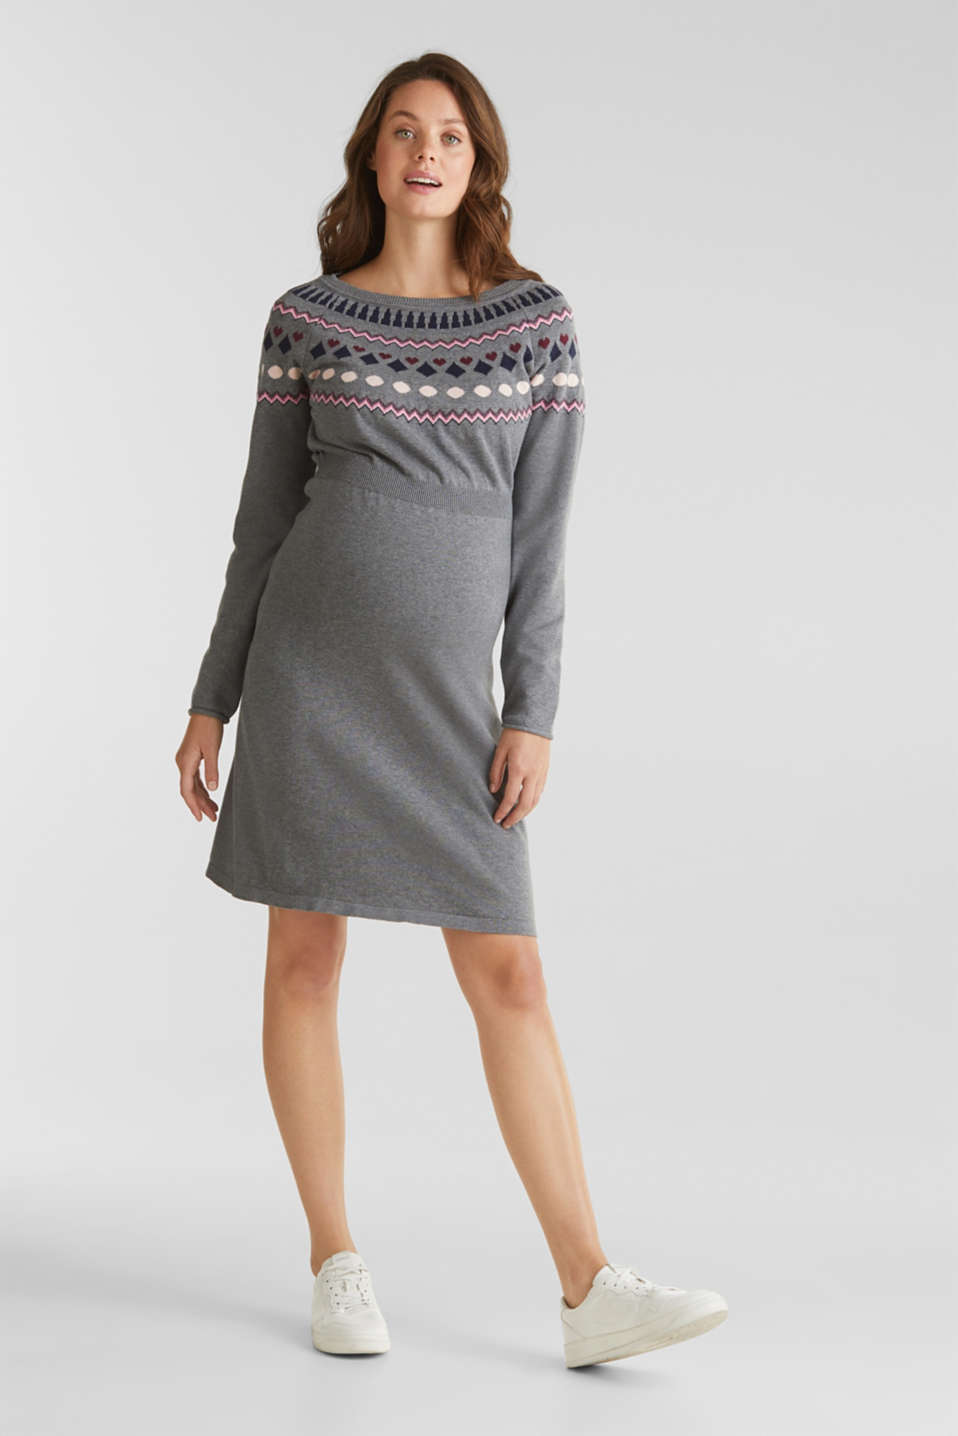 Knit dress with a jacquard pattern, LCMEDIUM GREY ME, detail image number 0